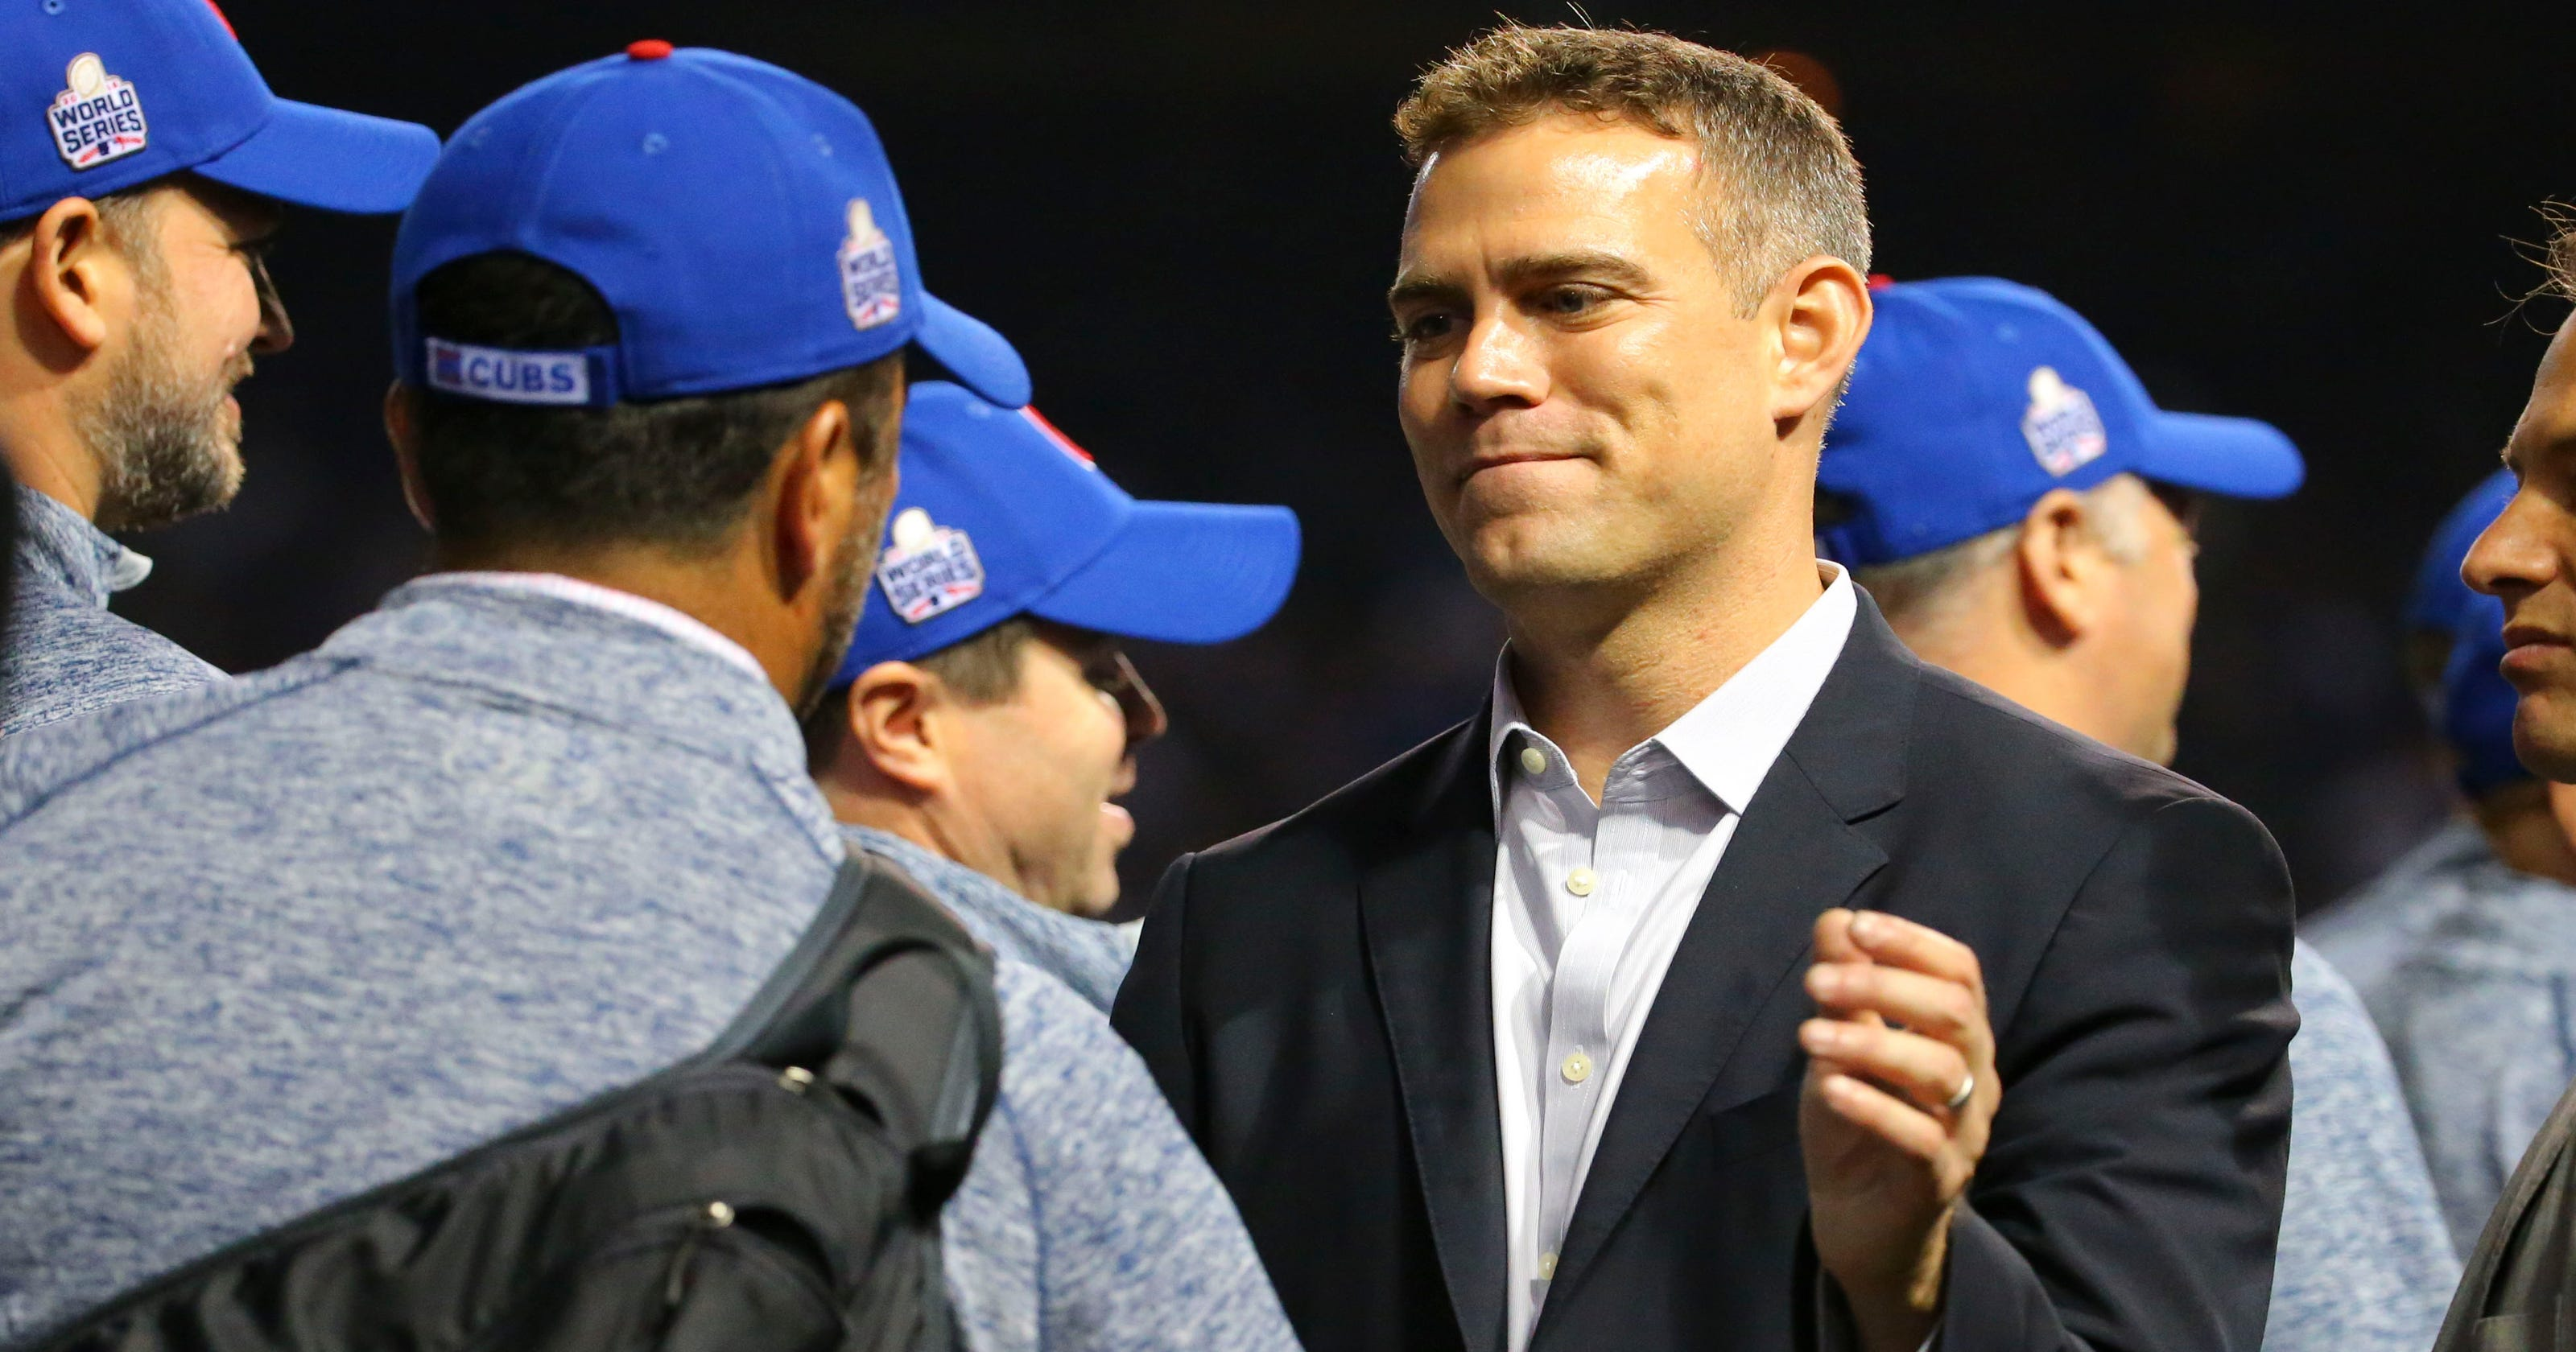 f75fddec7 Theo Epstein named Sporting News Major League Baseball Executive of the Year